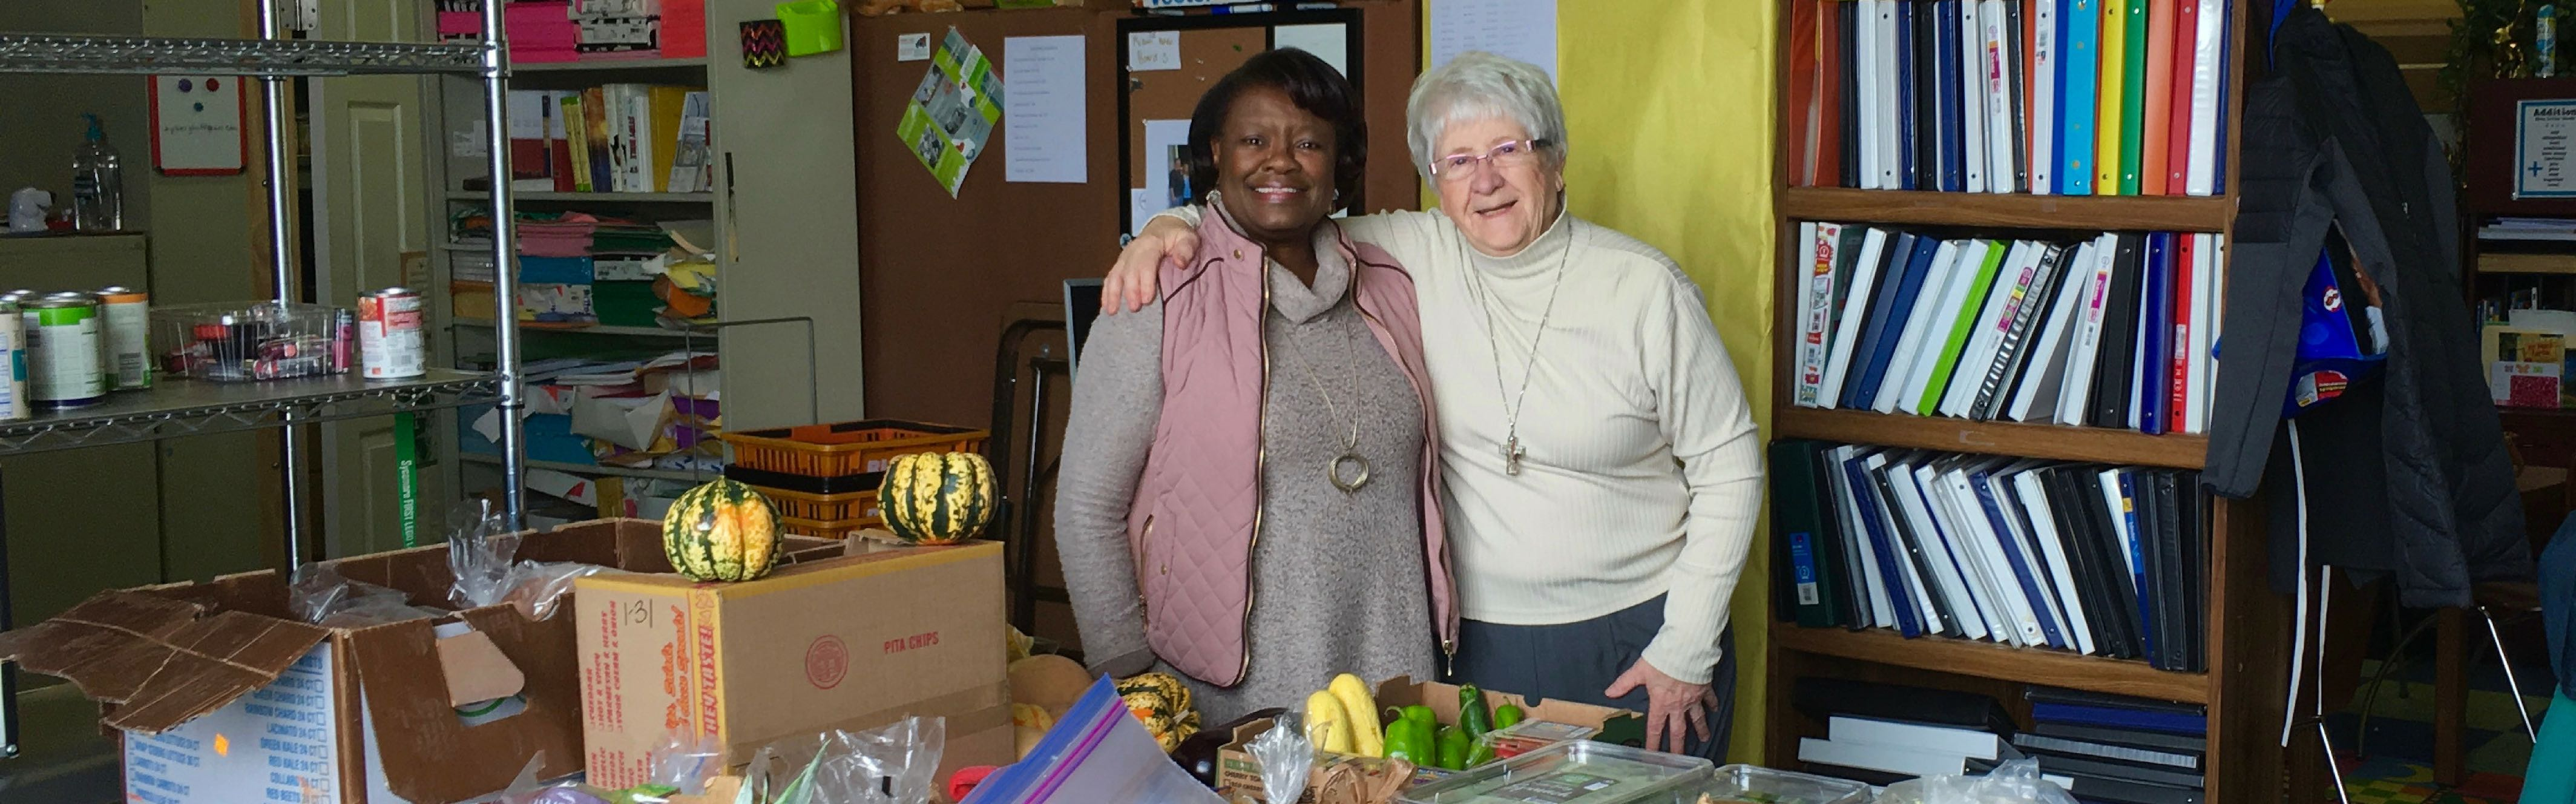 picture of Elaine Hipps and Clare Salter at Operation Give Back's warehouse